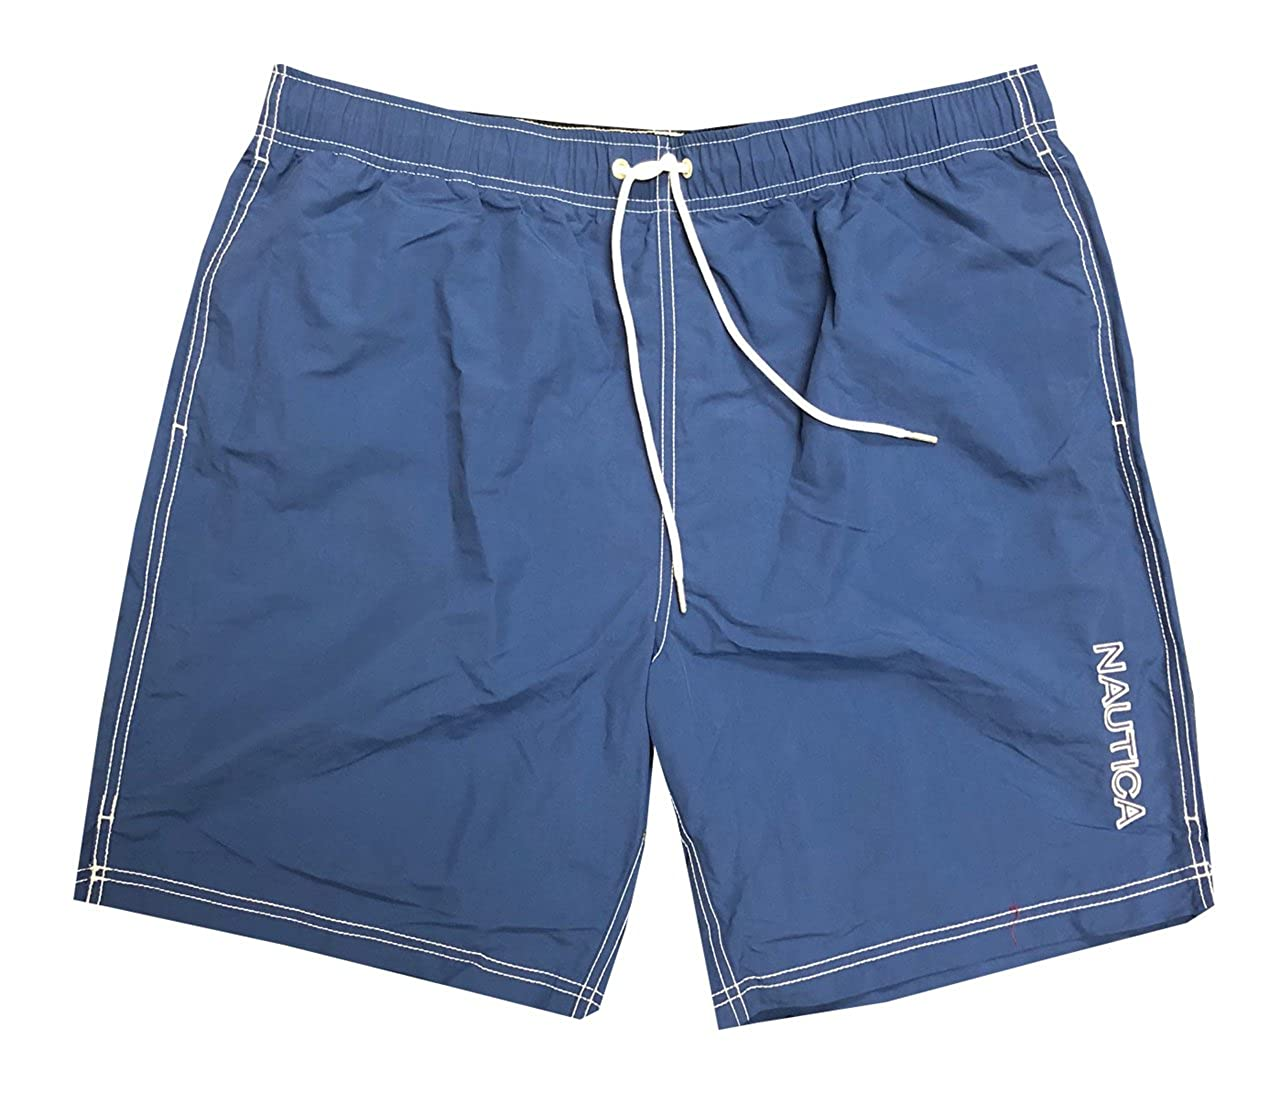 Nautica Mens Quick-Dry Logo Swim Trunk Shorts